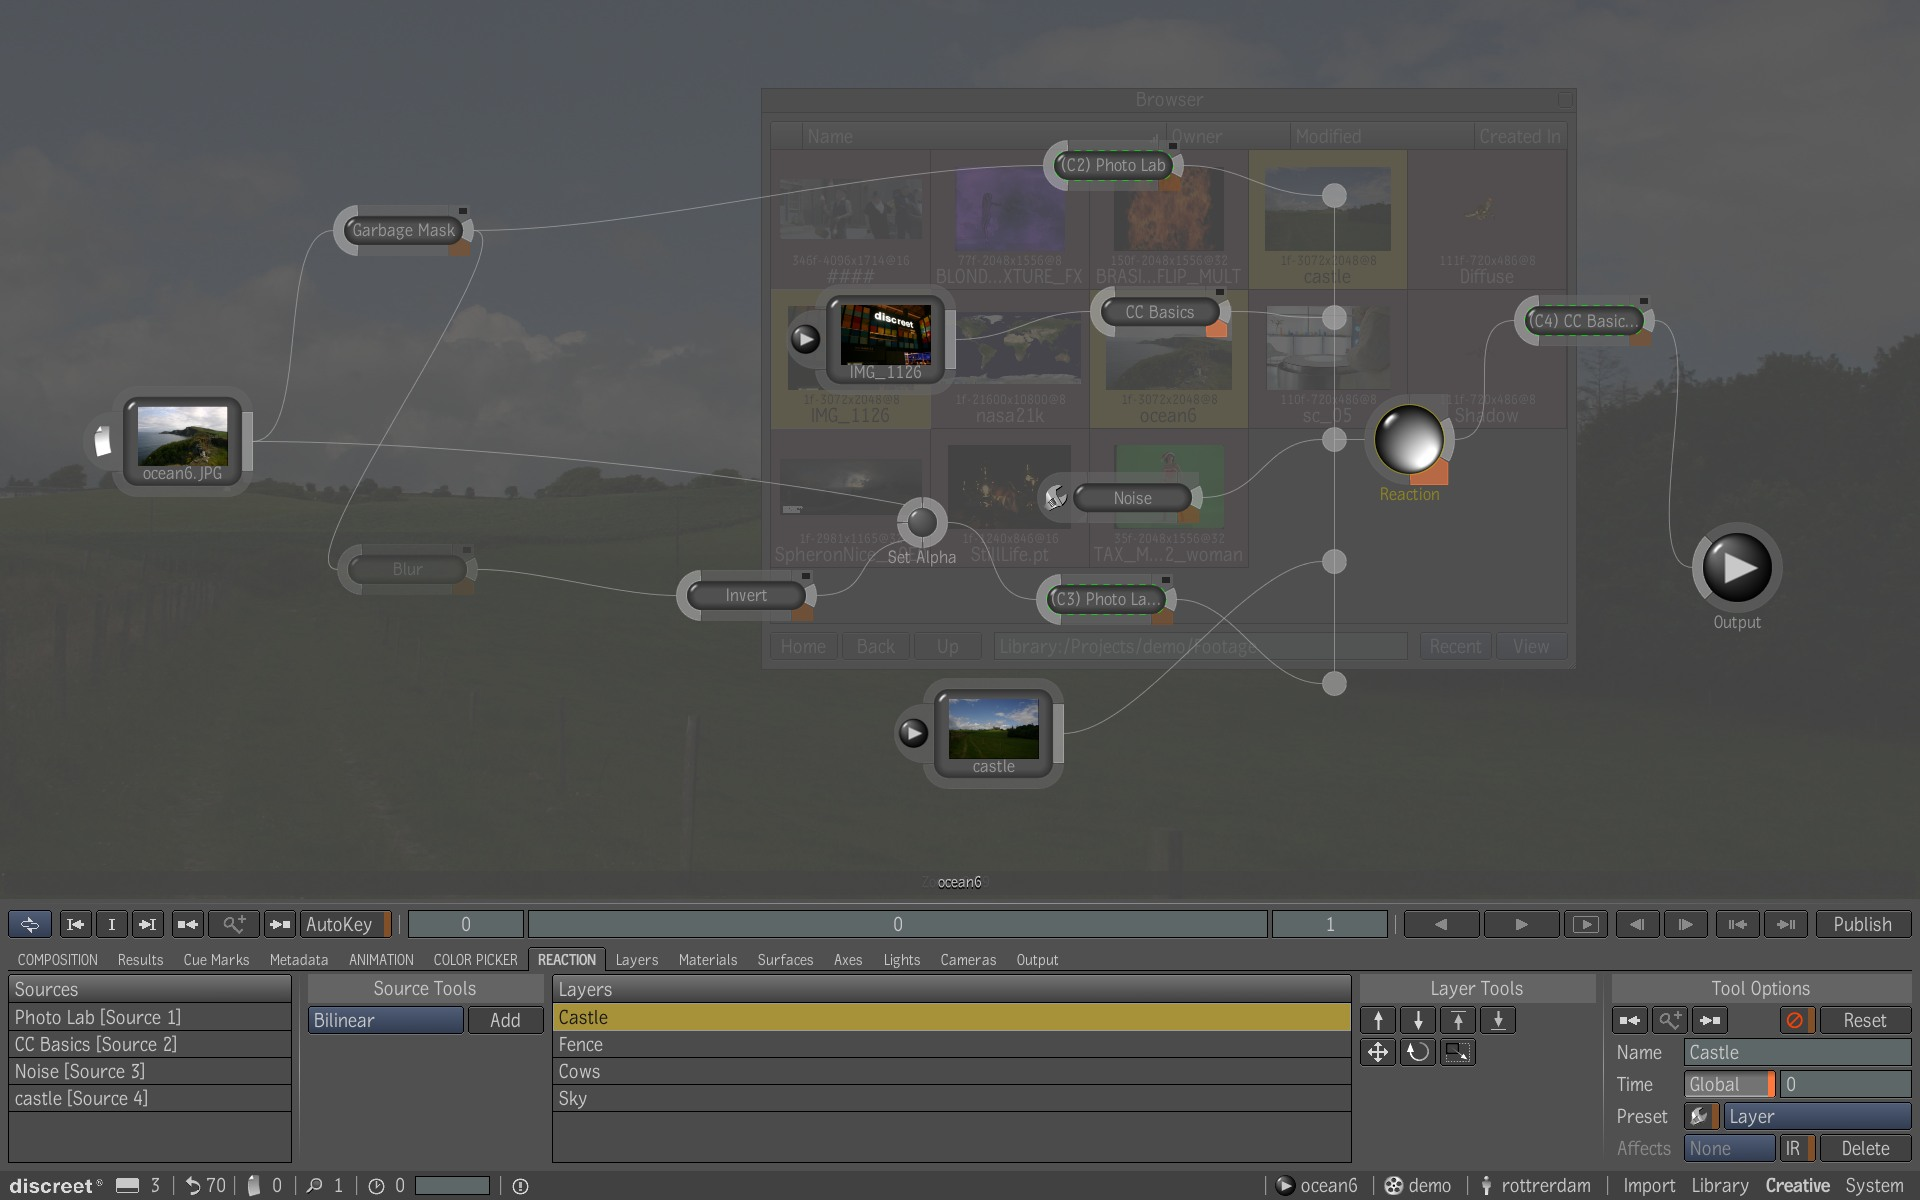 RFE - Expert mode in Houdini | Forums | SideFX